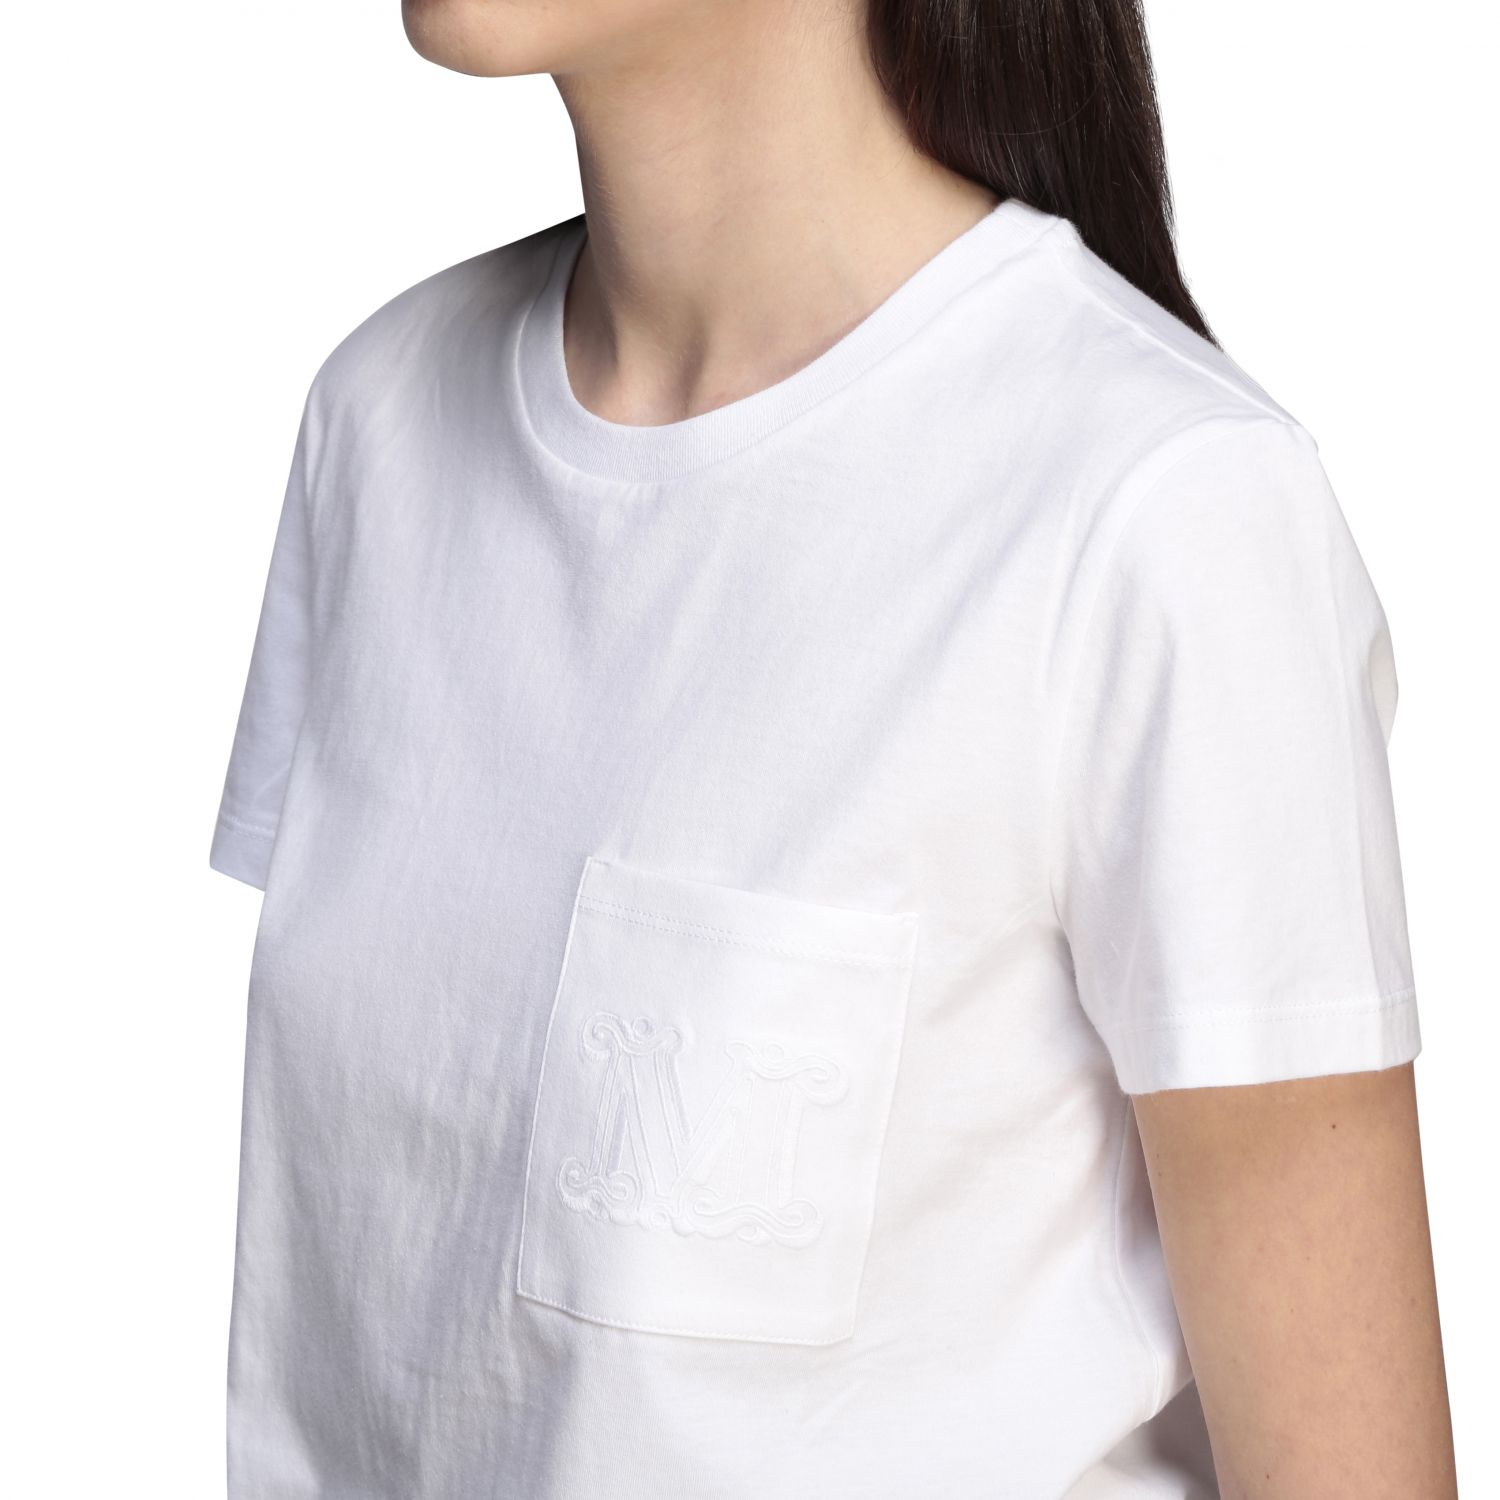 T-shirt women Max Mara white 5